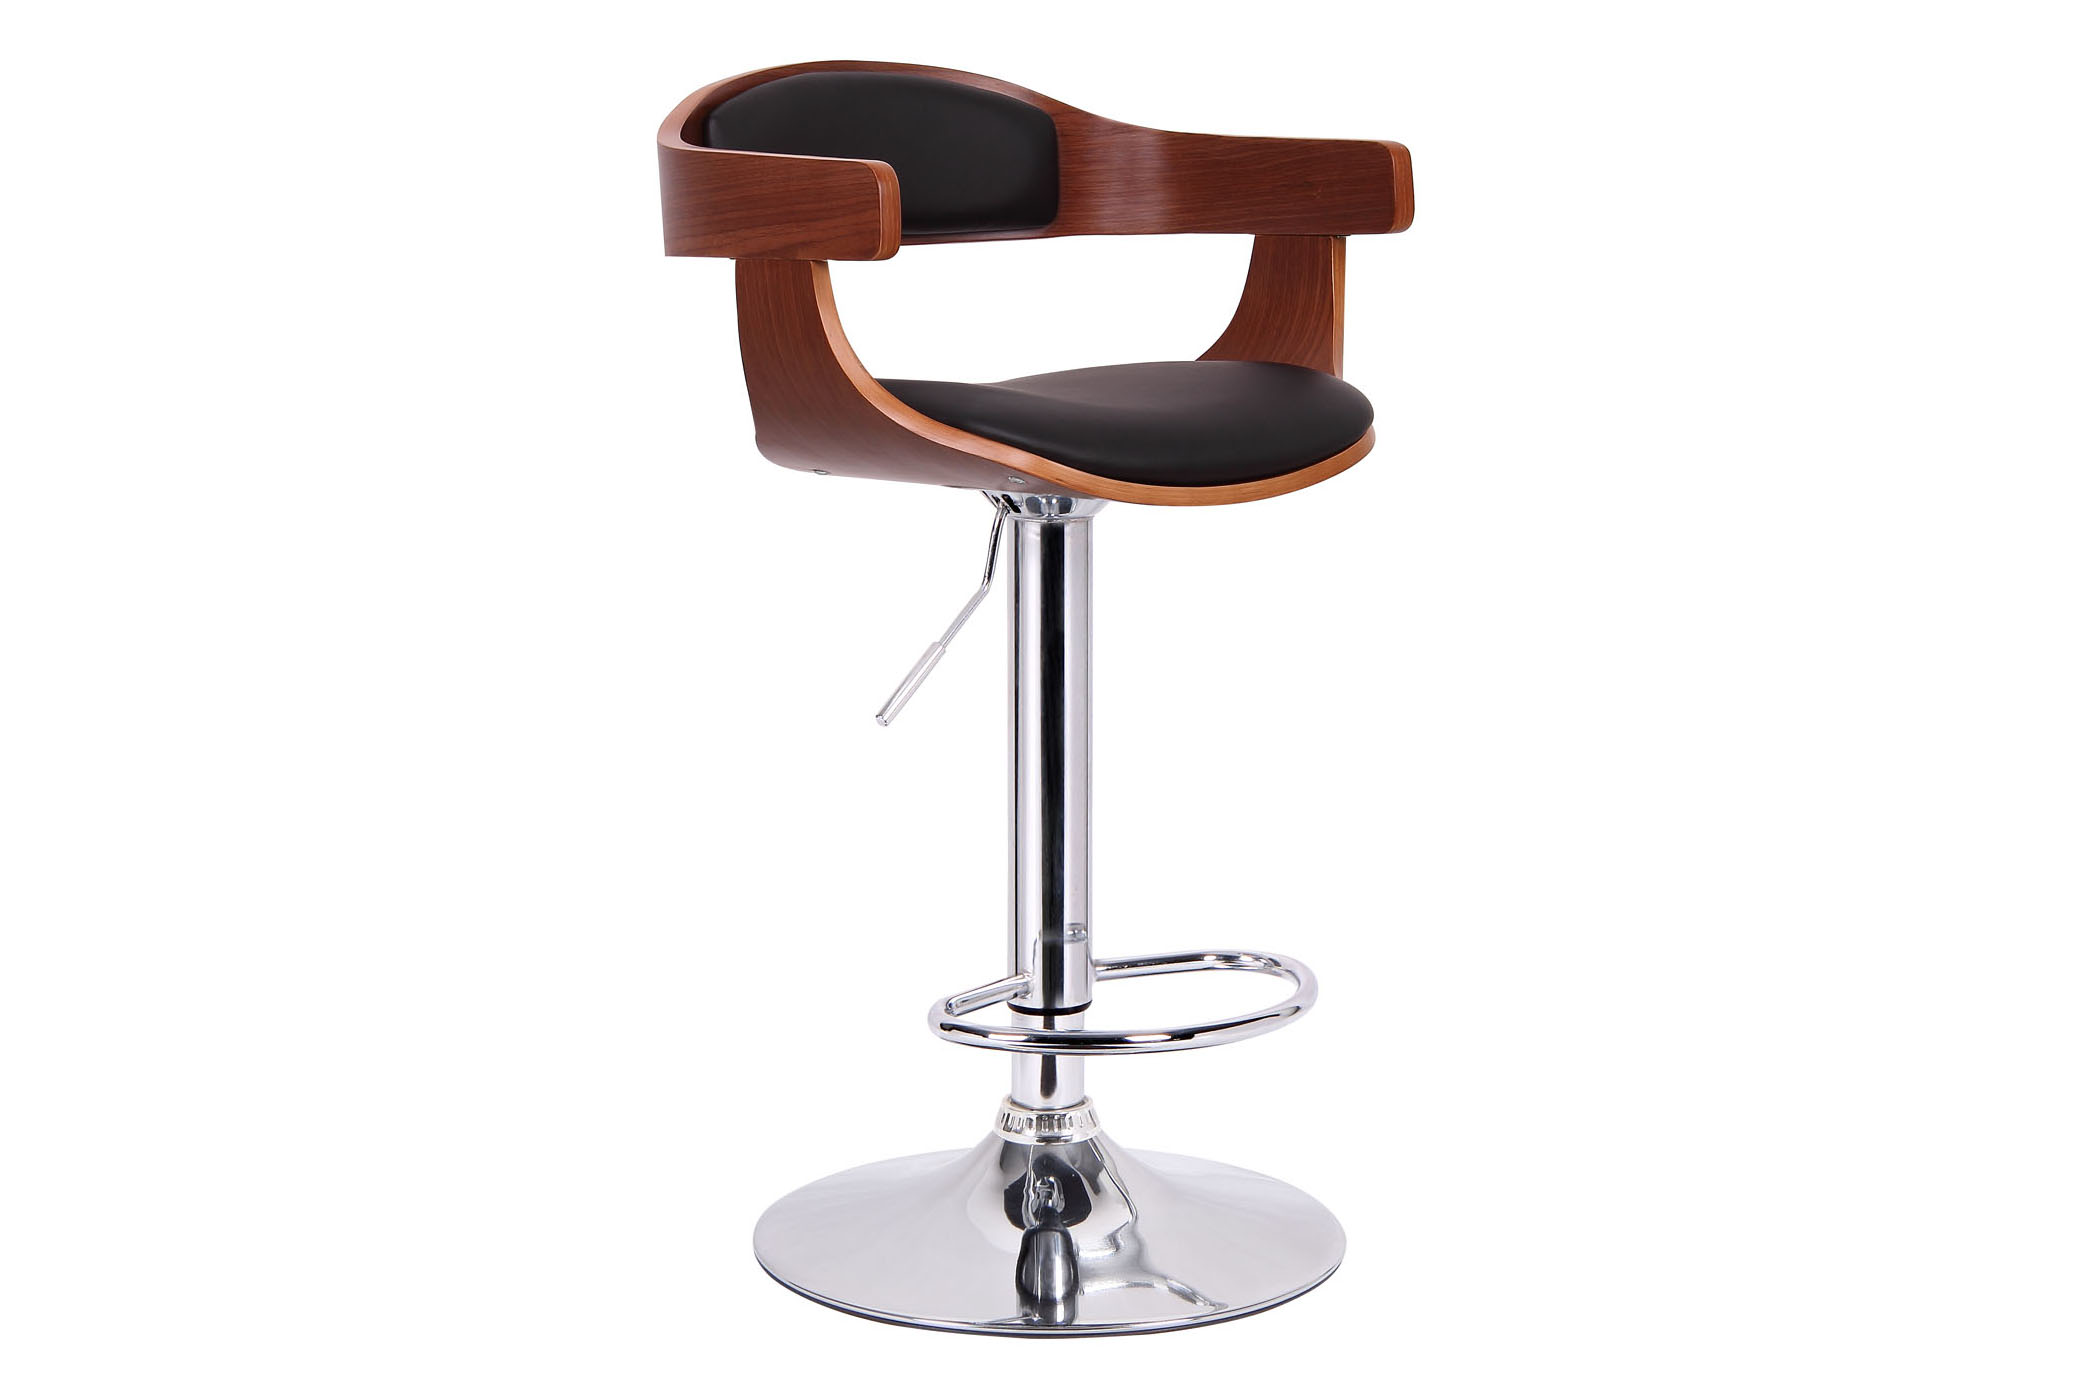 Baxton Studio Garr Walnut and Black Modern Bar Stool Garr Walnut and Black Modern Bar Stool,IESD-2178-walnut/black-PSTL,compare Garr Walnut and Black Modern Bar Stool,best price on Garr Walnut and Black Modern Bar Stool,discount  Garr Walnut and Black Modern Bar Stool,cheap  Garr Walnut and Black Modern Bar Stool